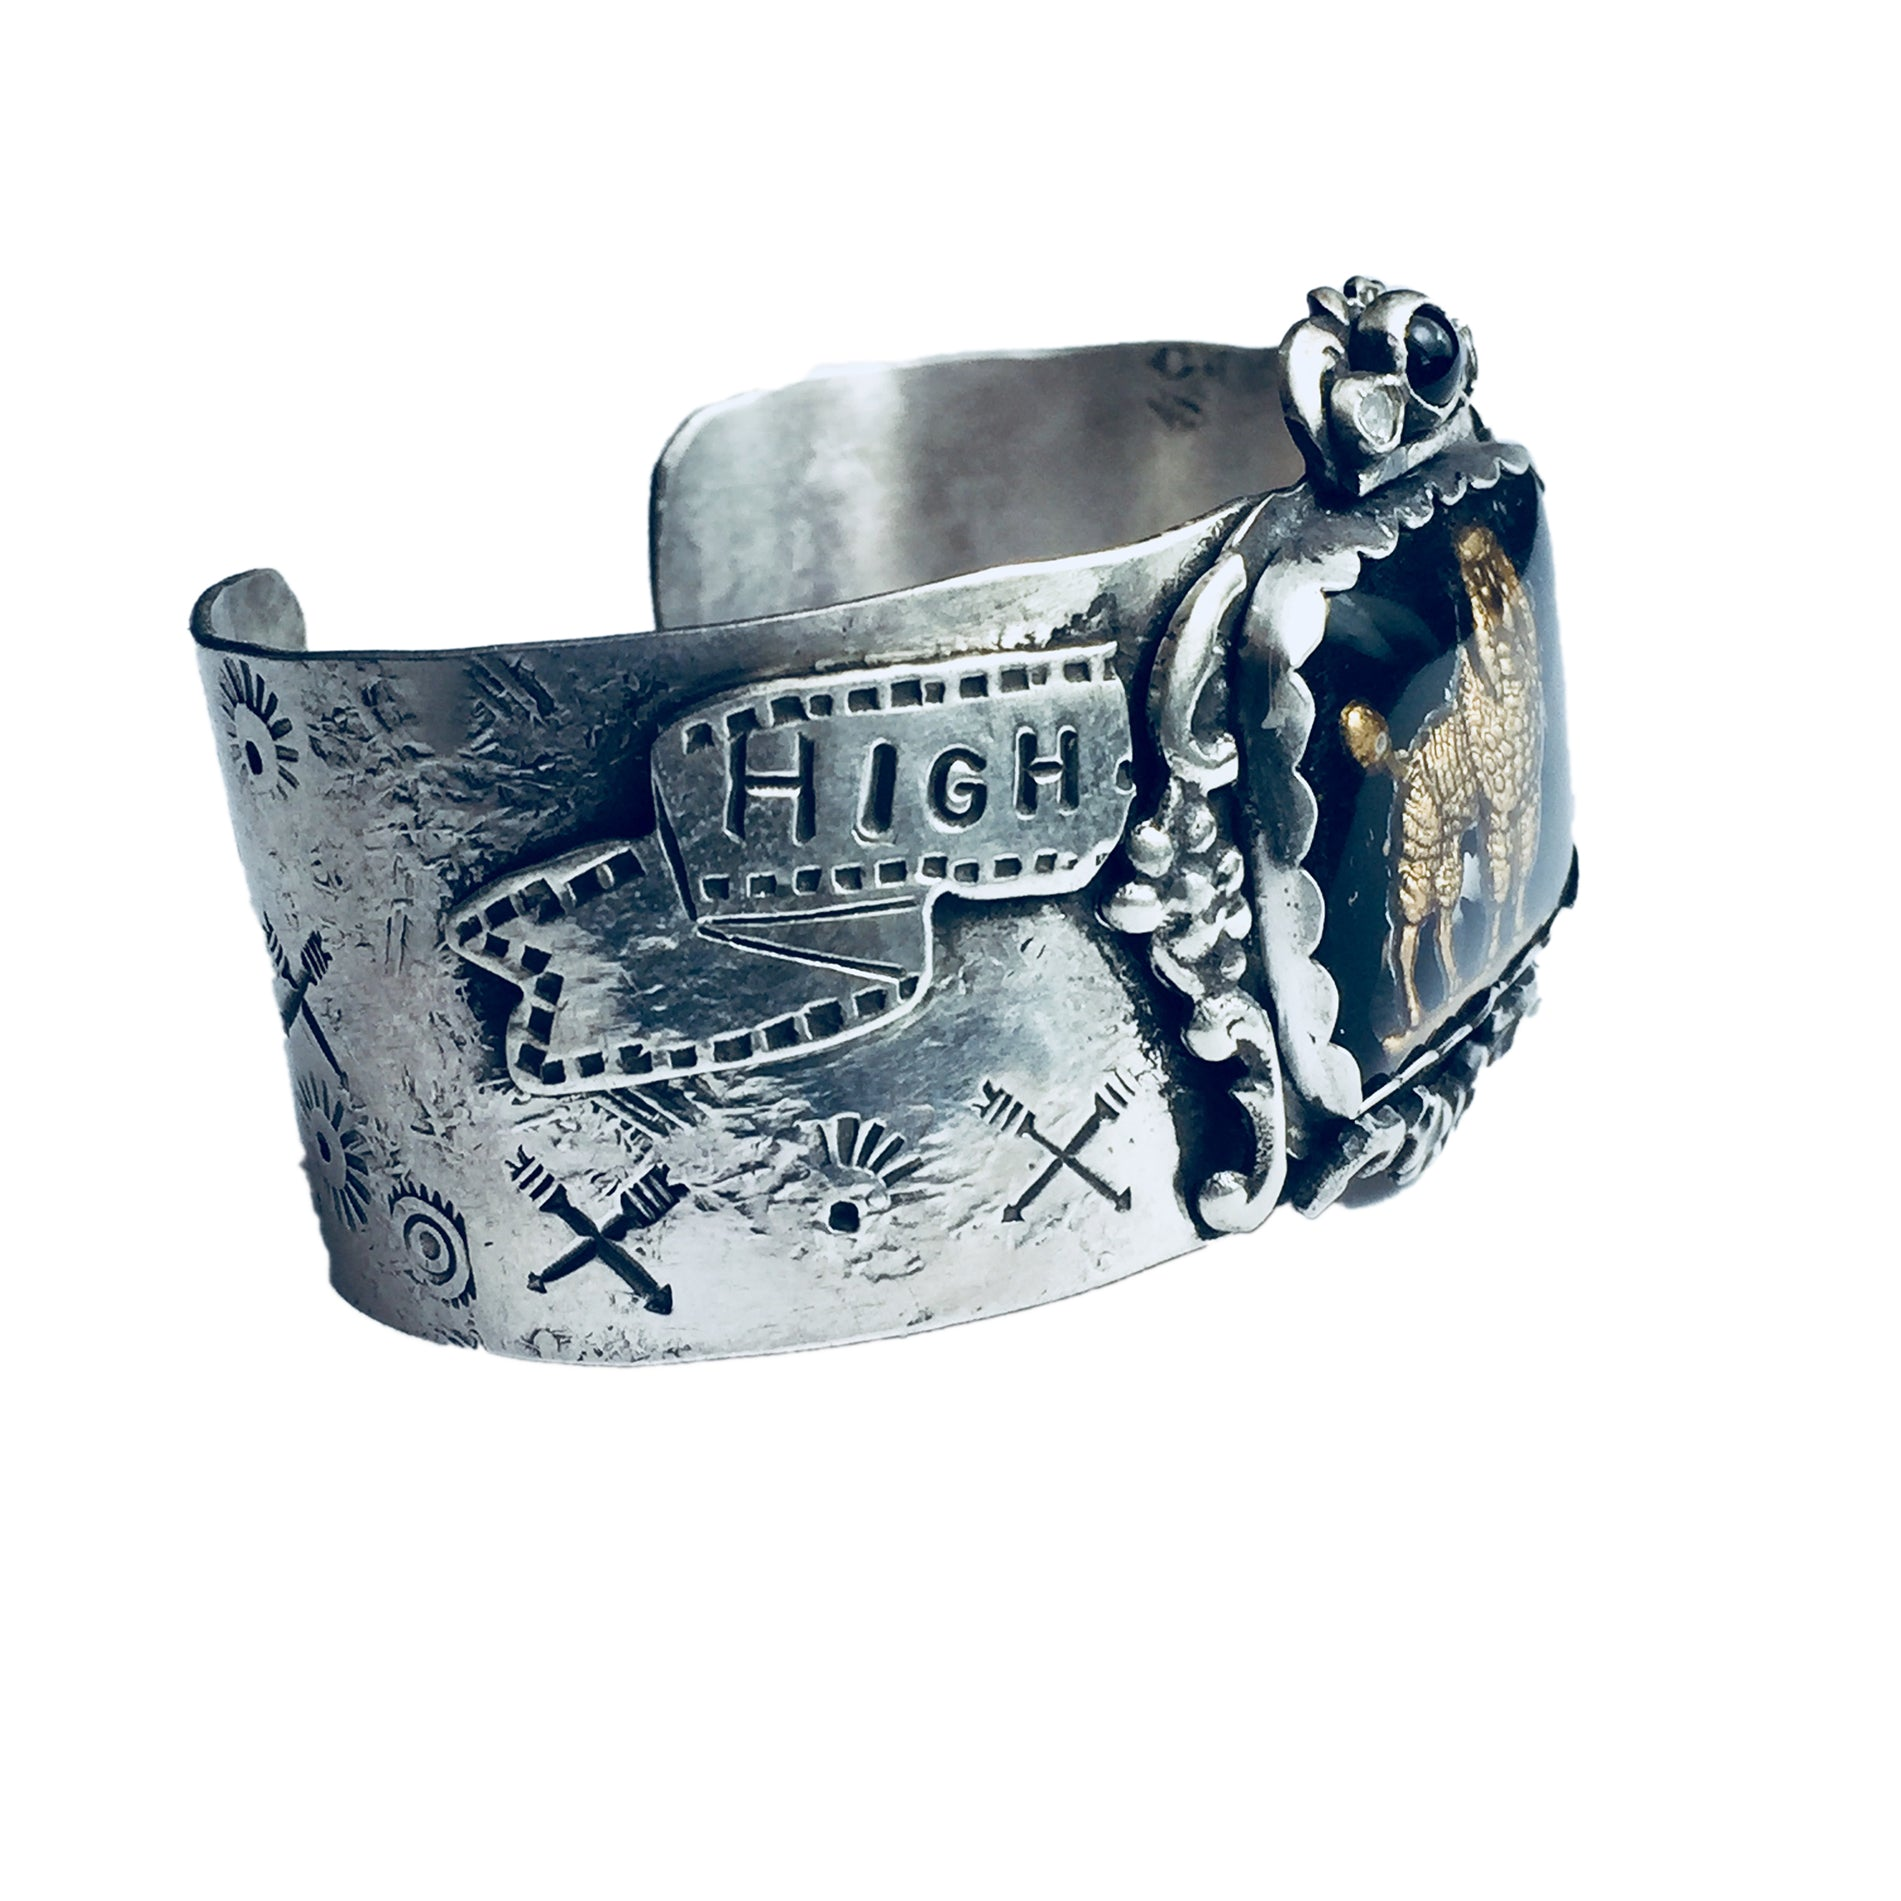 High Maintenance Cuff Bracelet